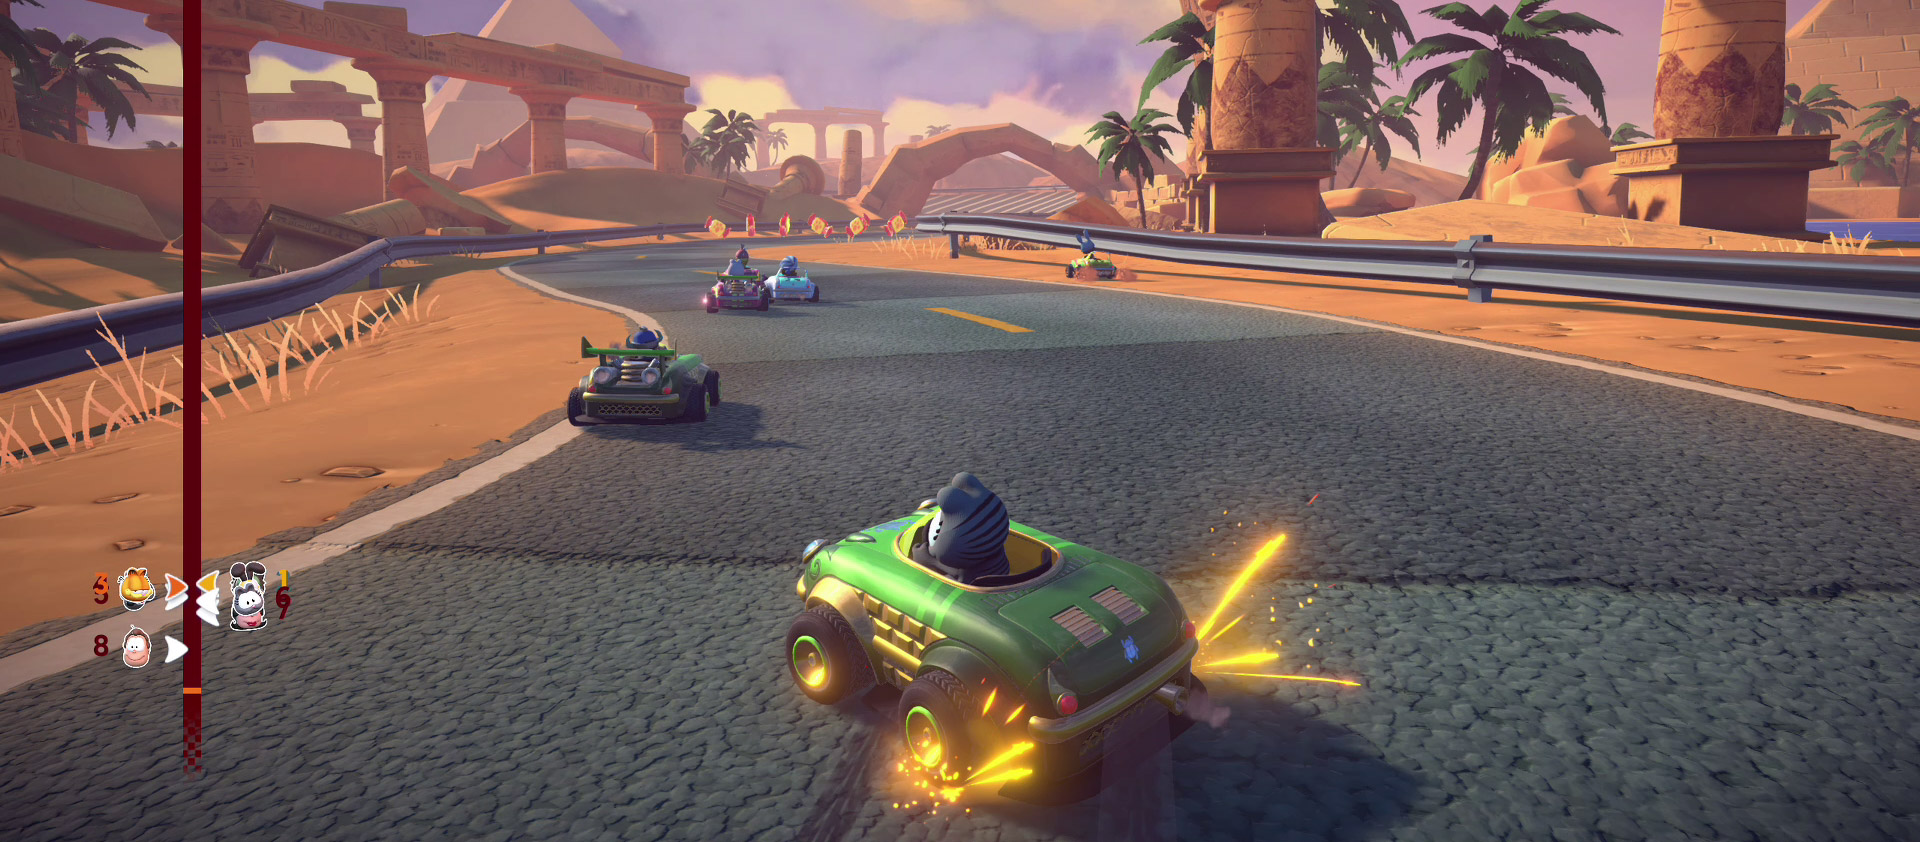 Garfield Kart Furious Racing Is Fine And All But When Are We Getting A Horror Game